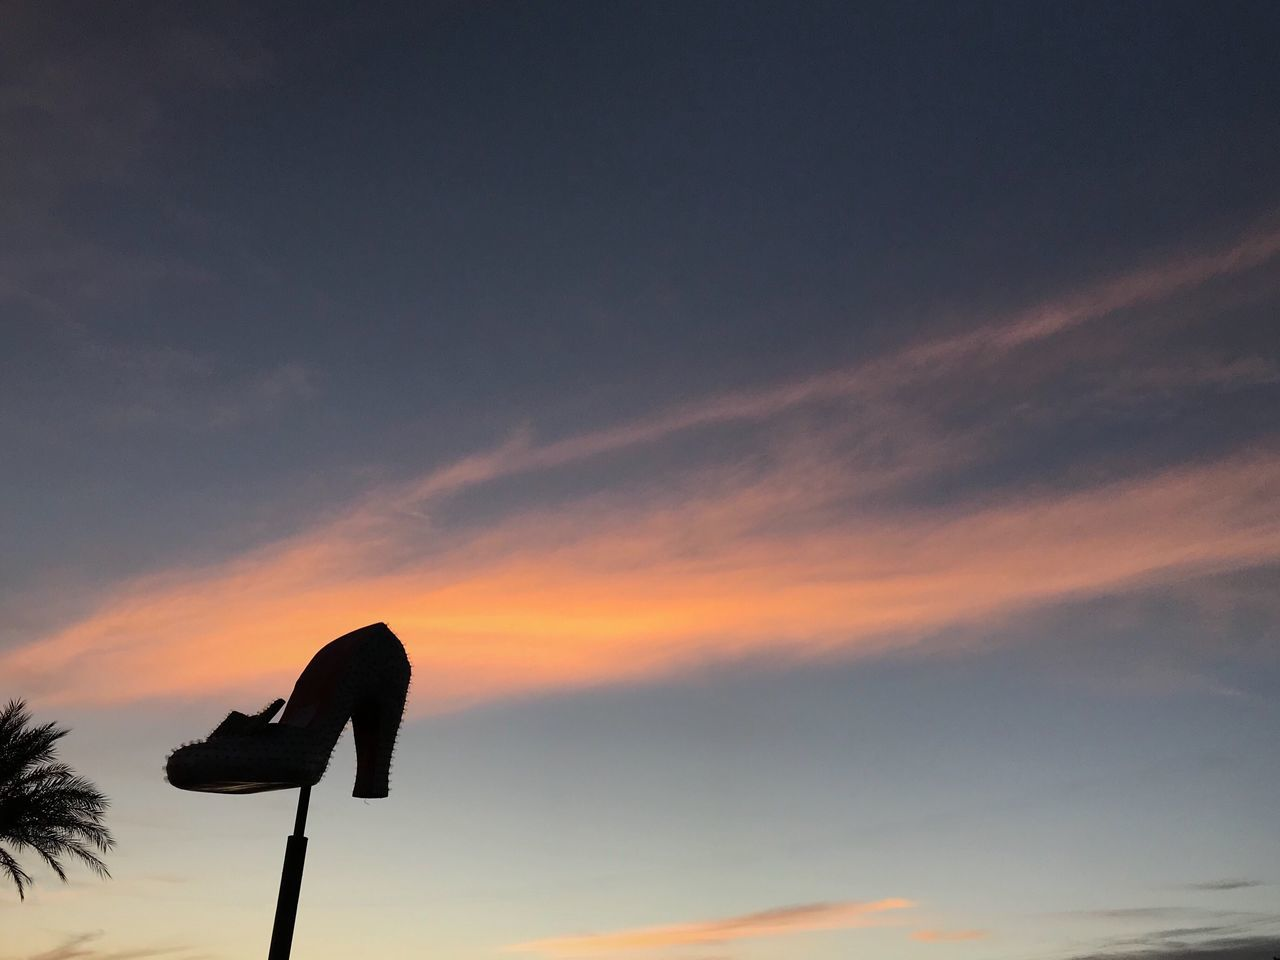 sunset, sky, beauty in nature, nature, no people, cloud - sky, scenics, silhouette, low angle view, outdoors, day